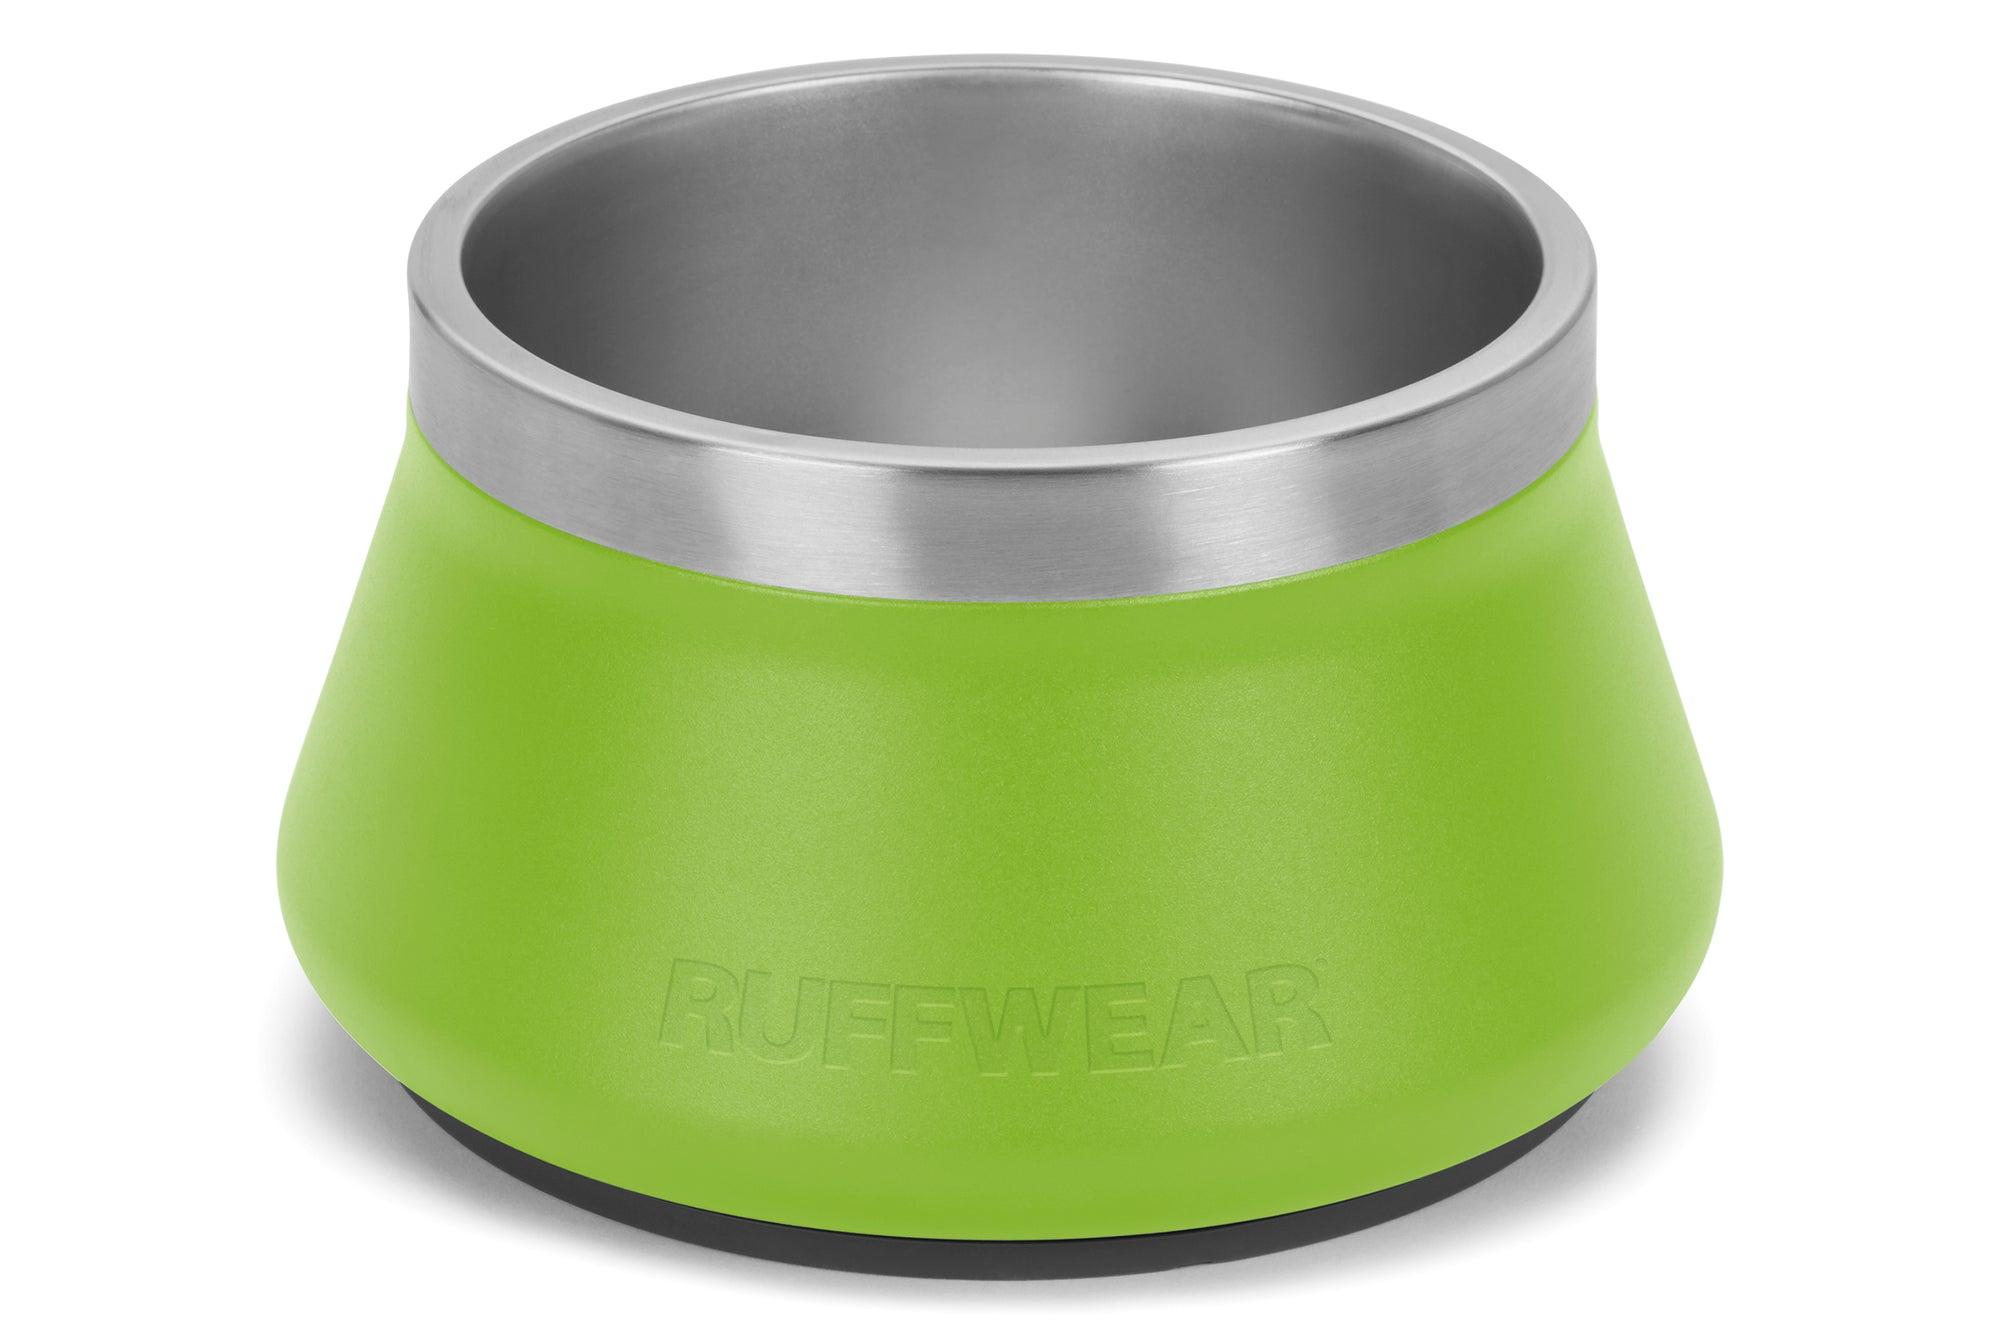 Ruffwear Basecamp Bowl - Final Sale*